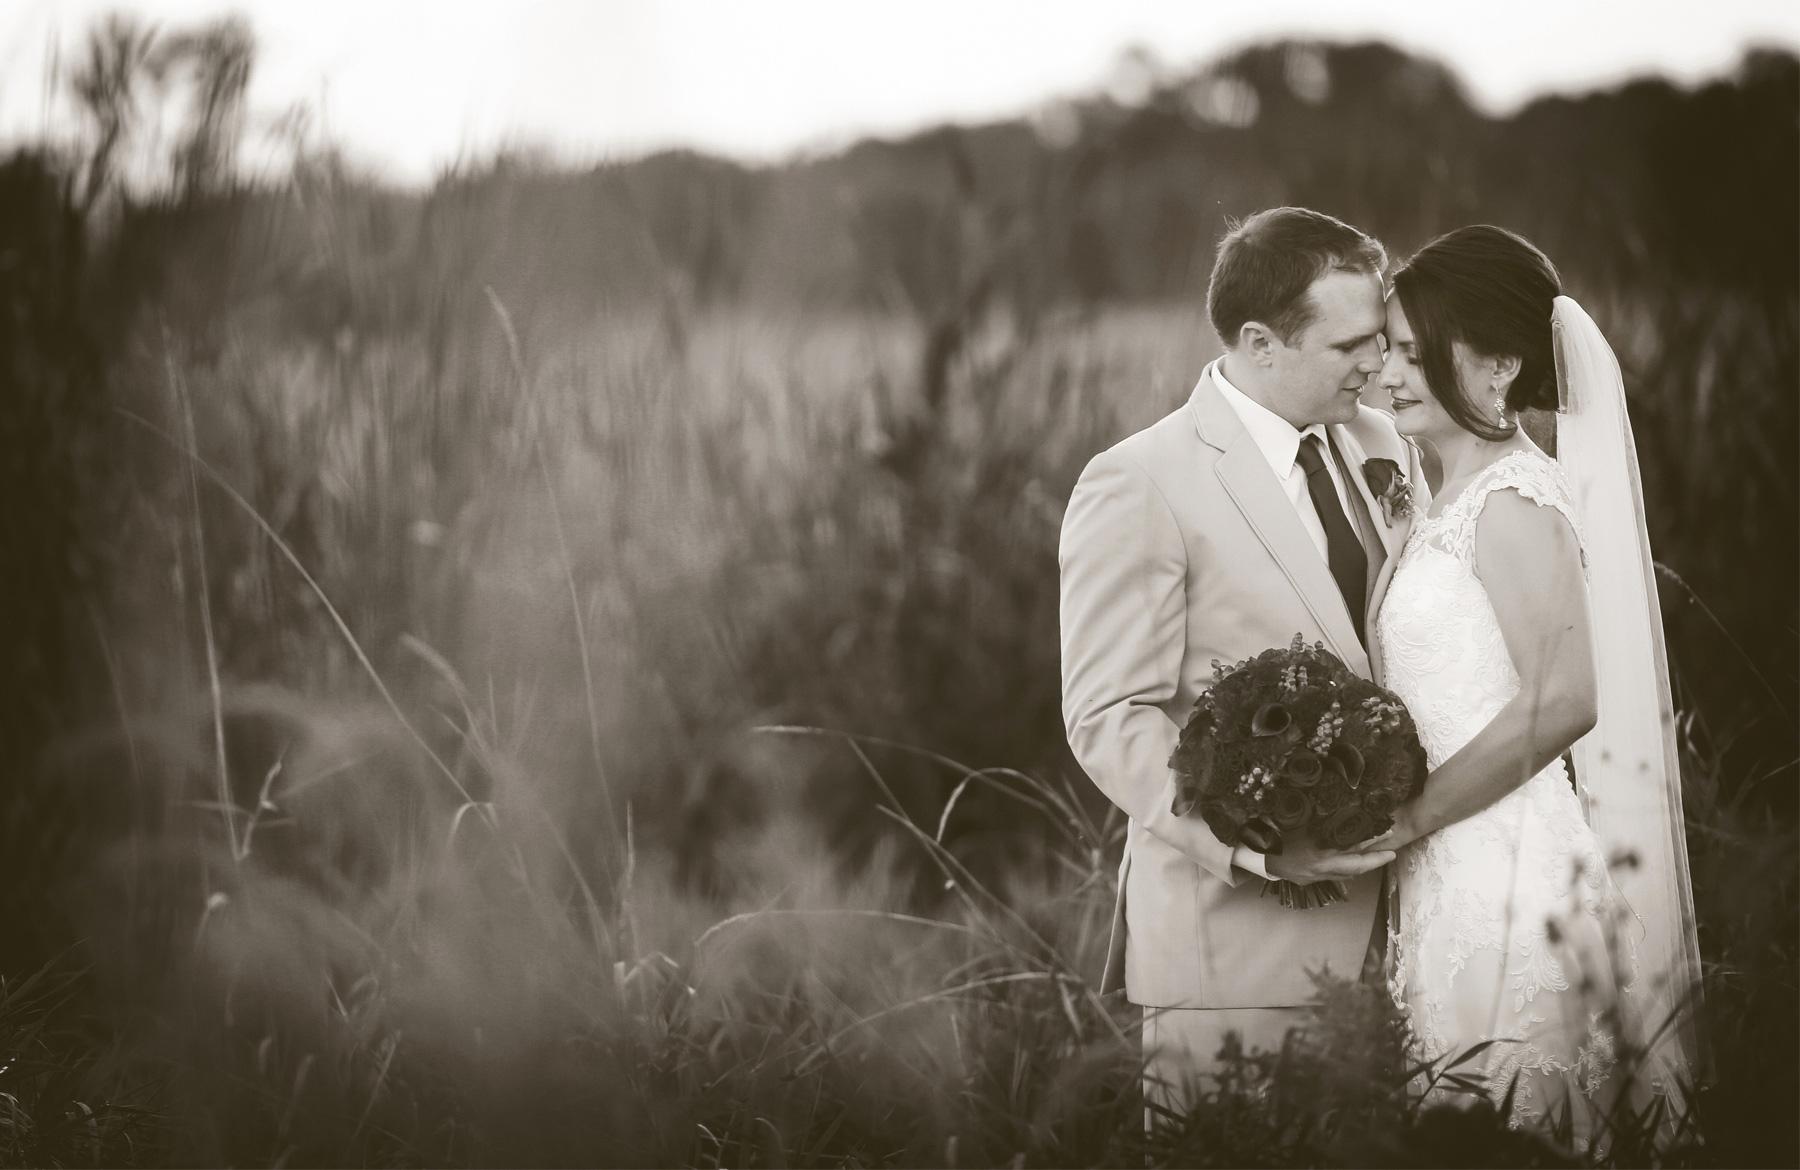 10-Minneapolis-Minnesota-Wedding-Photography-by-Vick-Photography-Courtney-and-Kevin.jpg